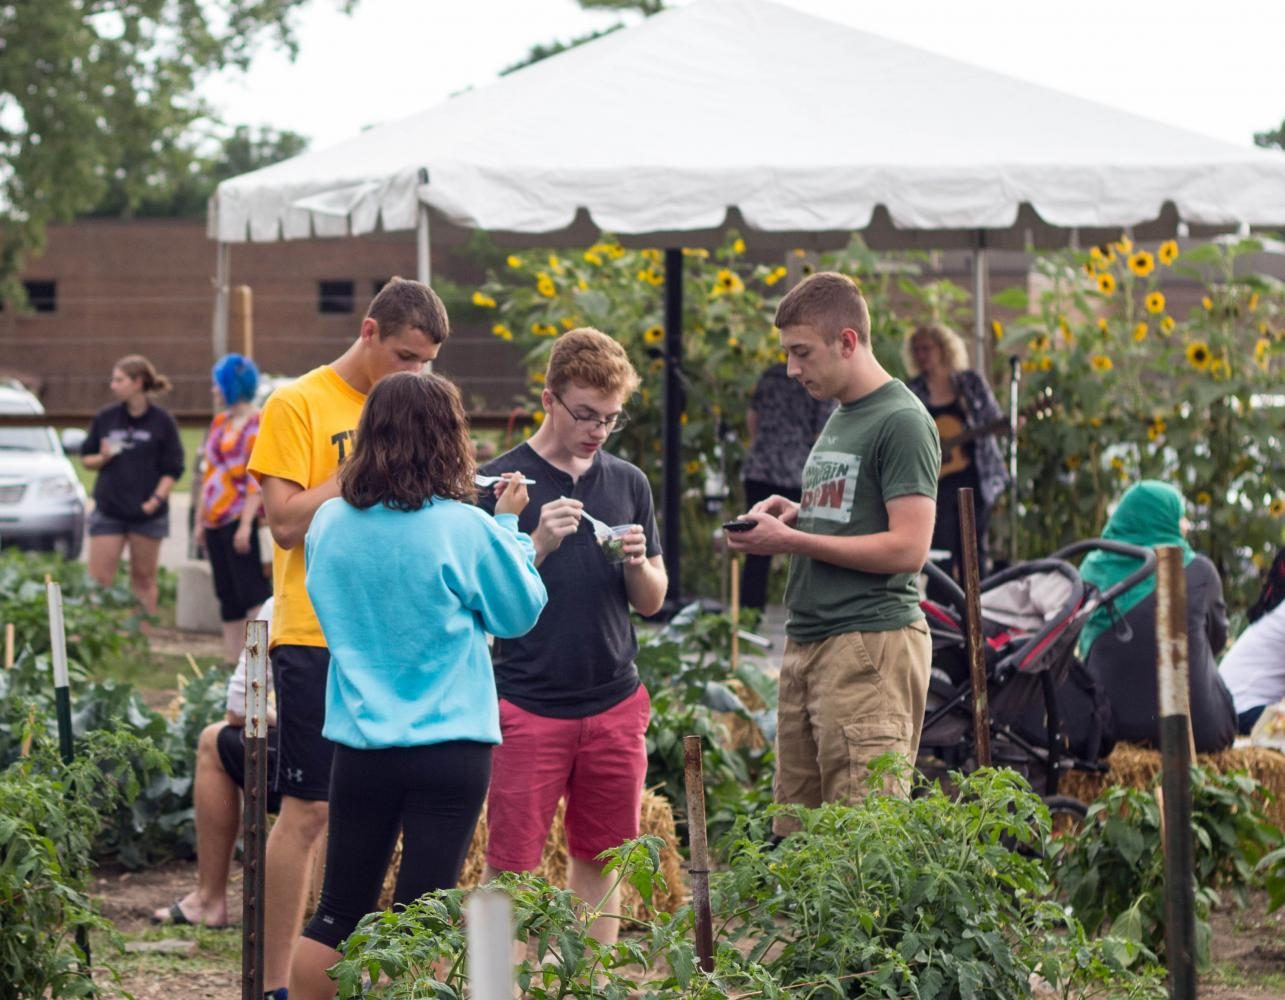 Students gathered at Panther Plots last Thursday for the fifth annual Harvest Festival, where they feasted on vegetables from the garden and enjoyed live music.